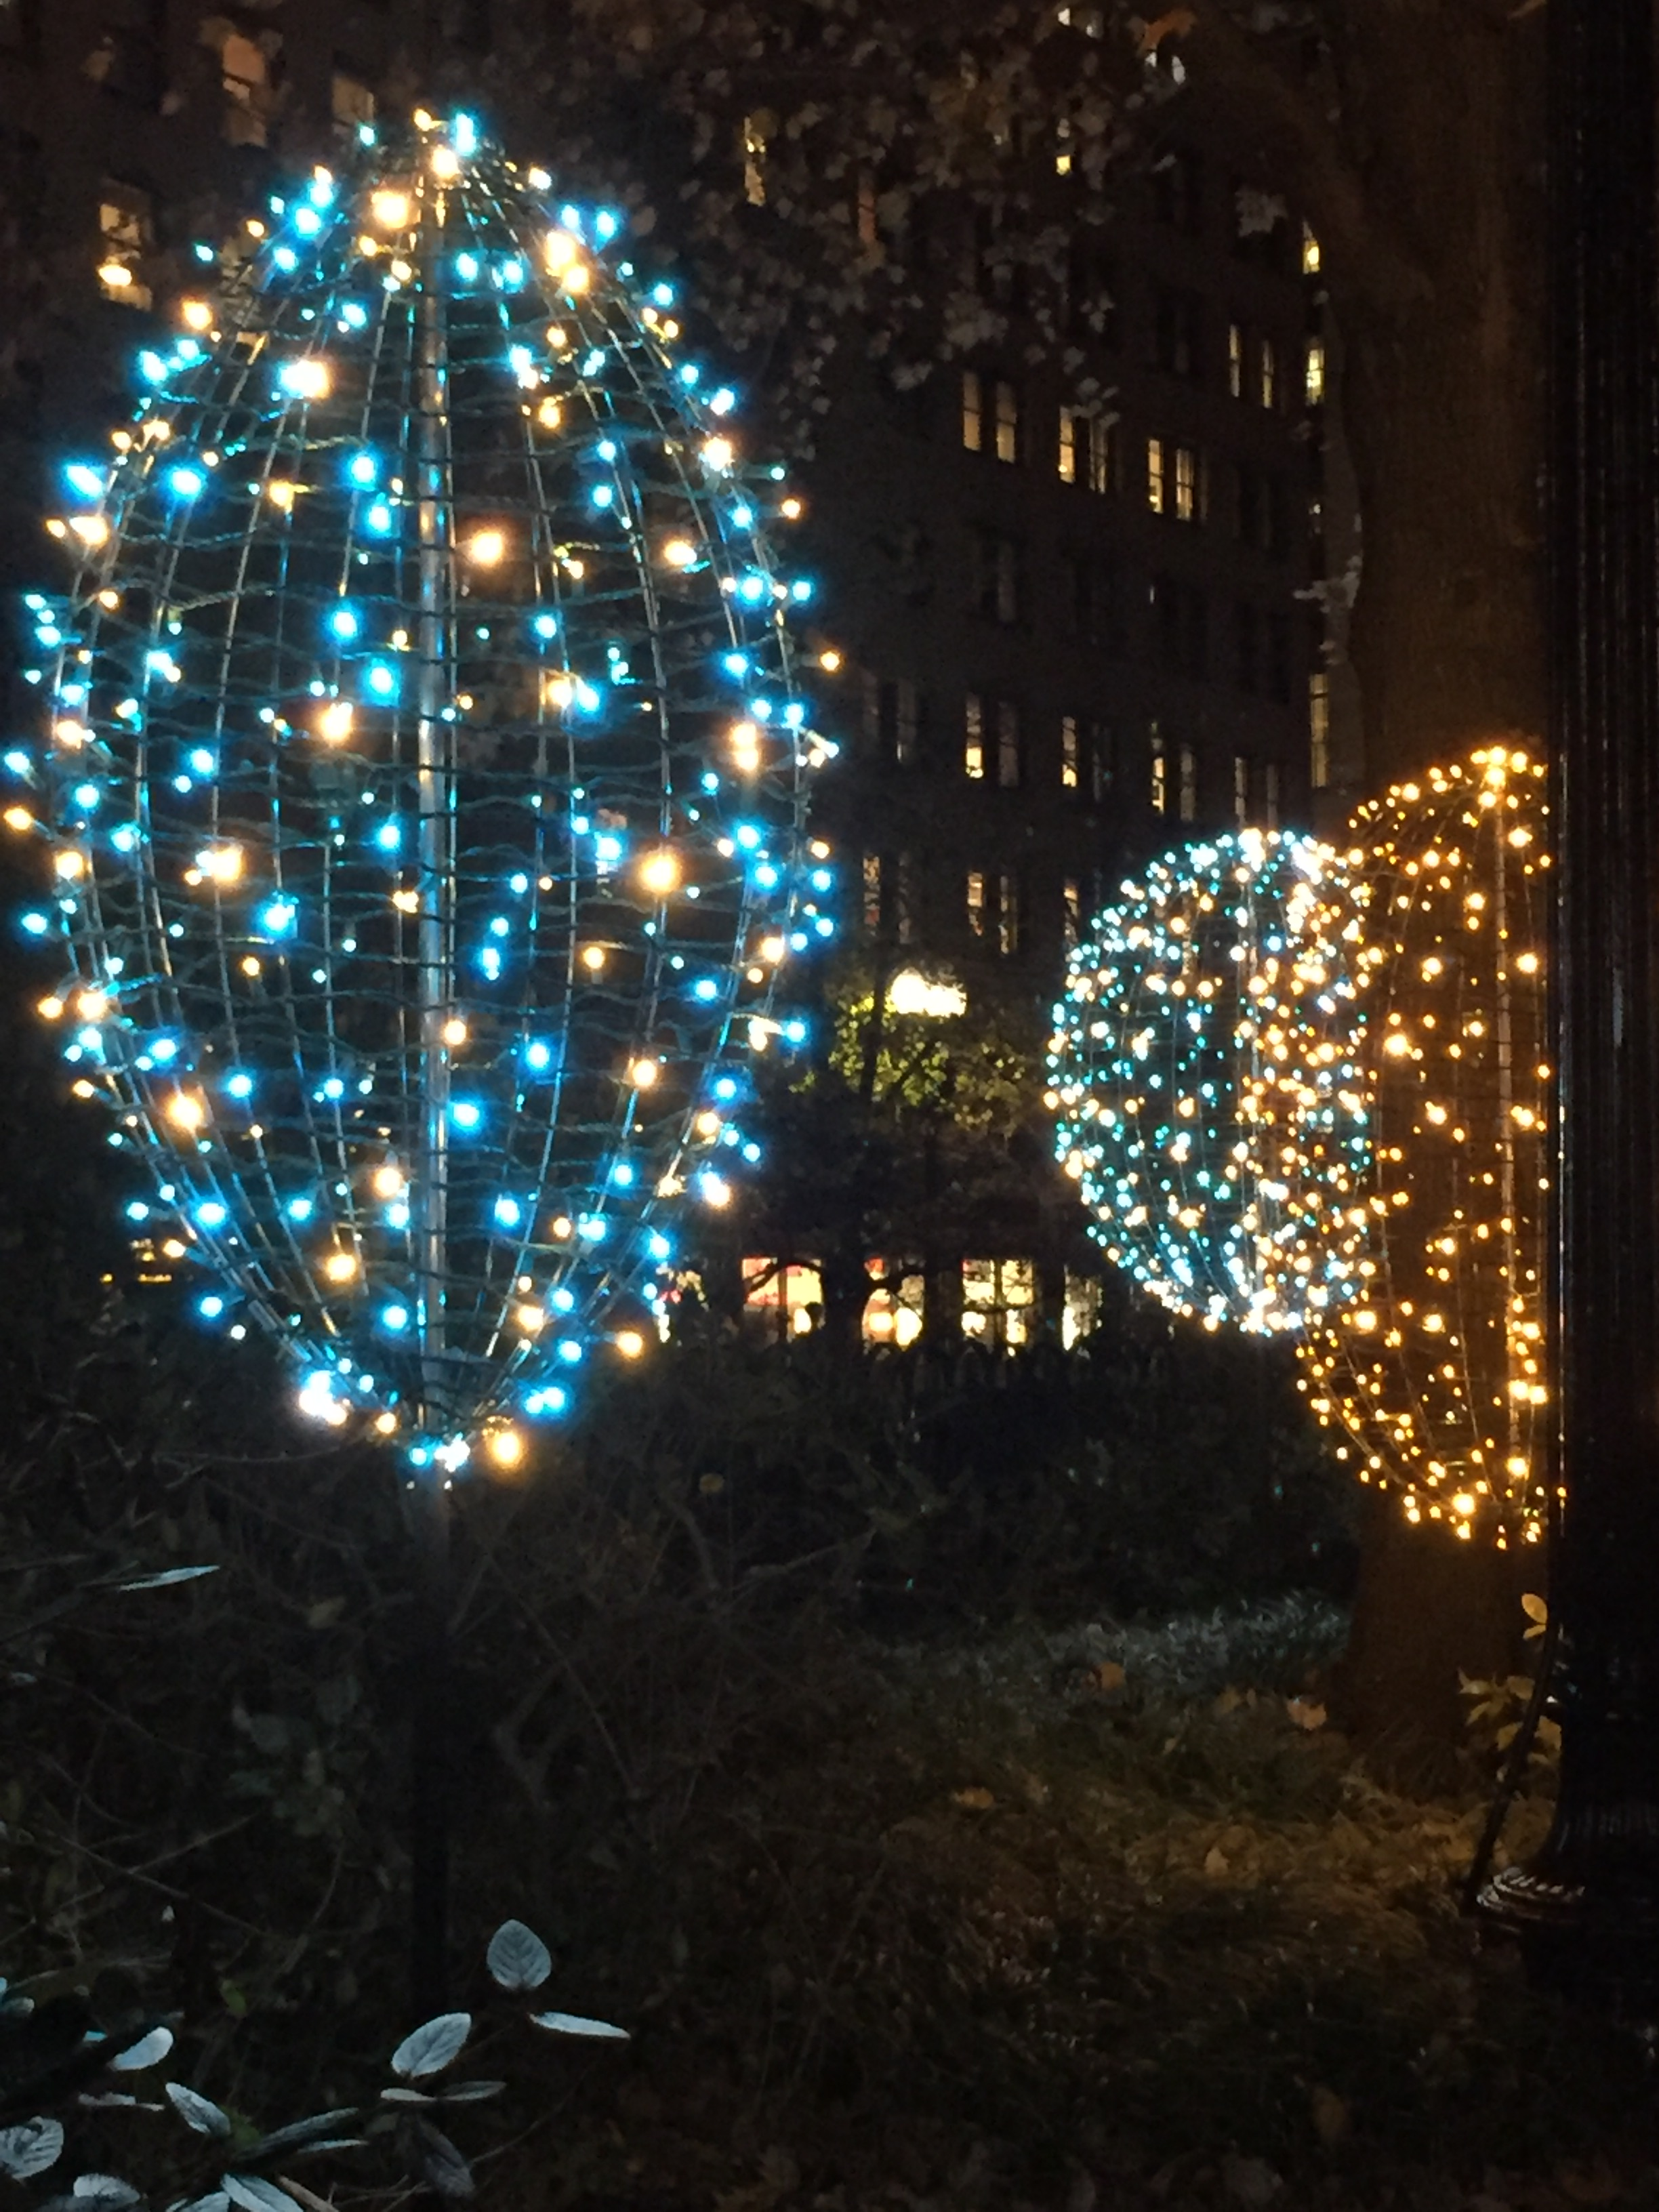 Come See Our New Winter Lights! | Norman B. Leventhal Park